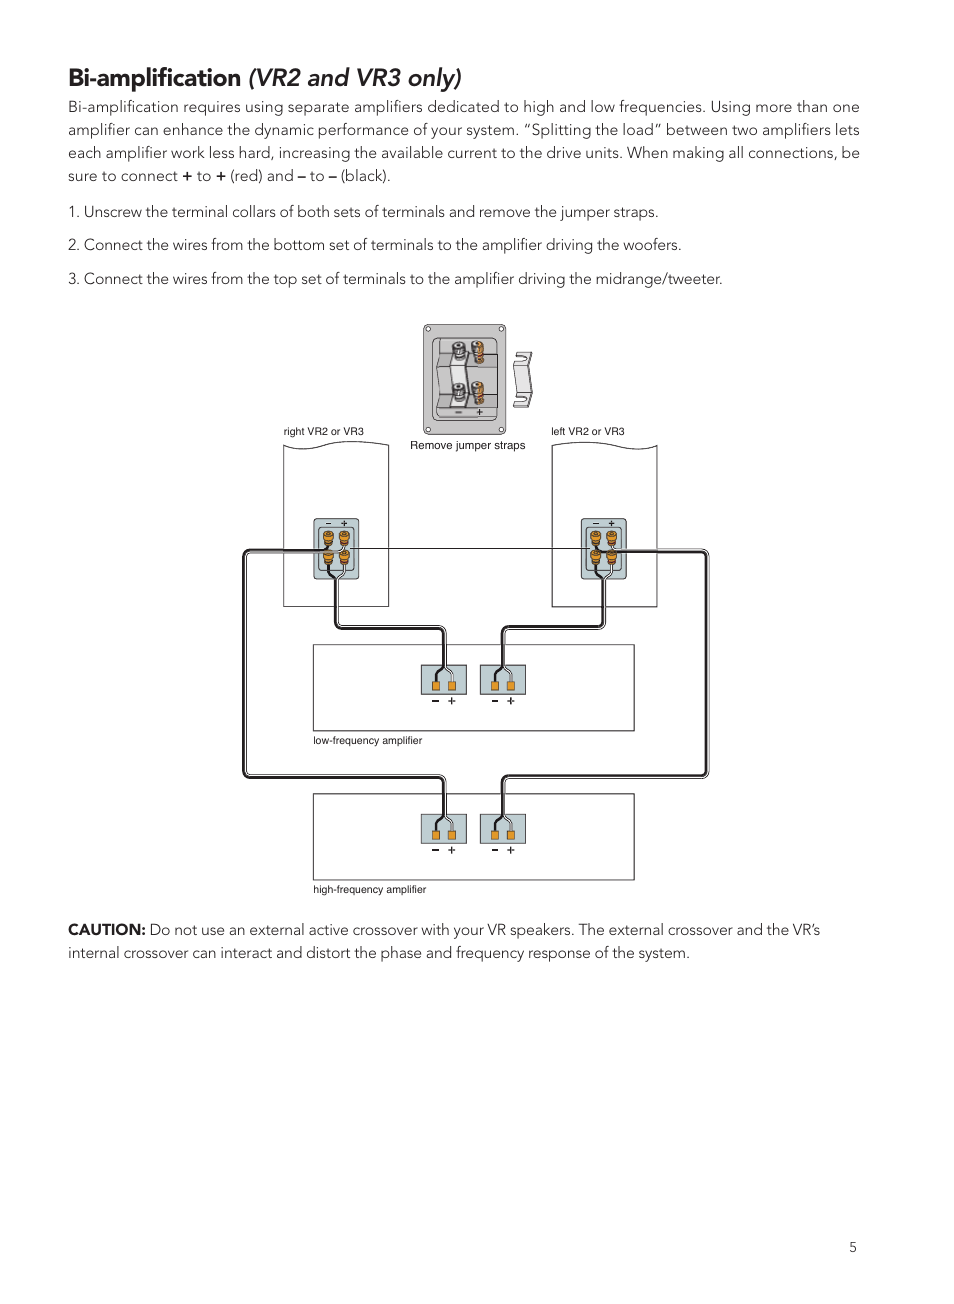 Bi Amplification Vr2 And Vr3 Only Boston Acoustics Vrc User Active Crossover Wiring Diagram Manual Page 5 8